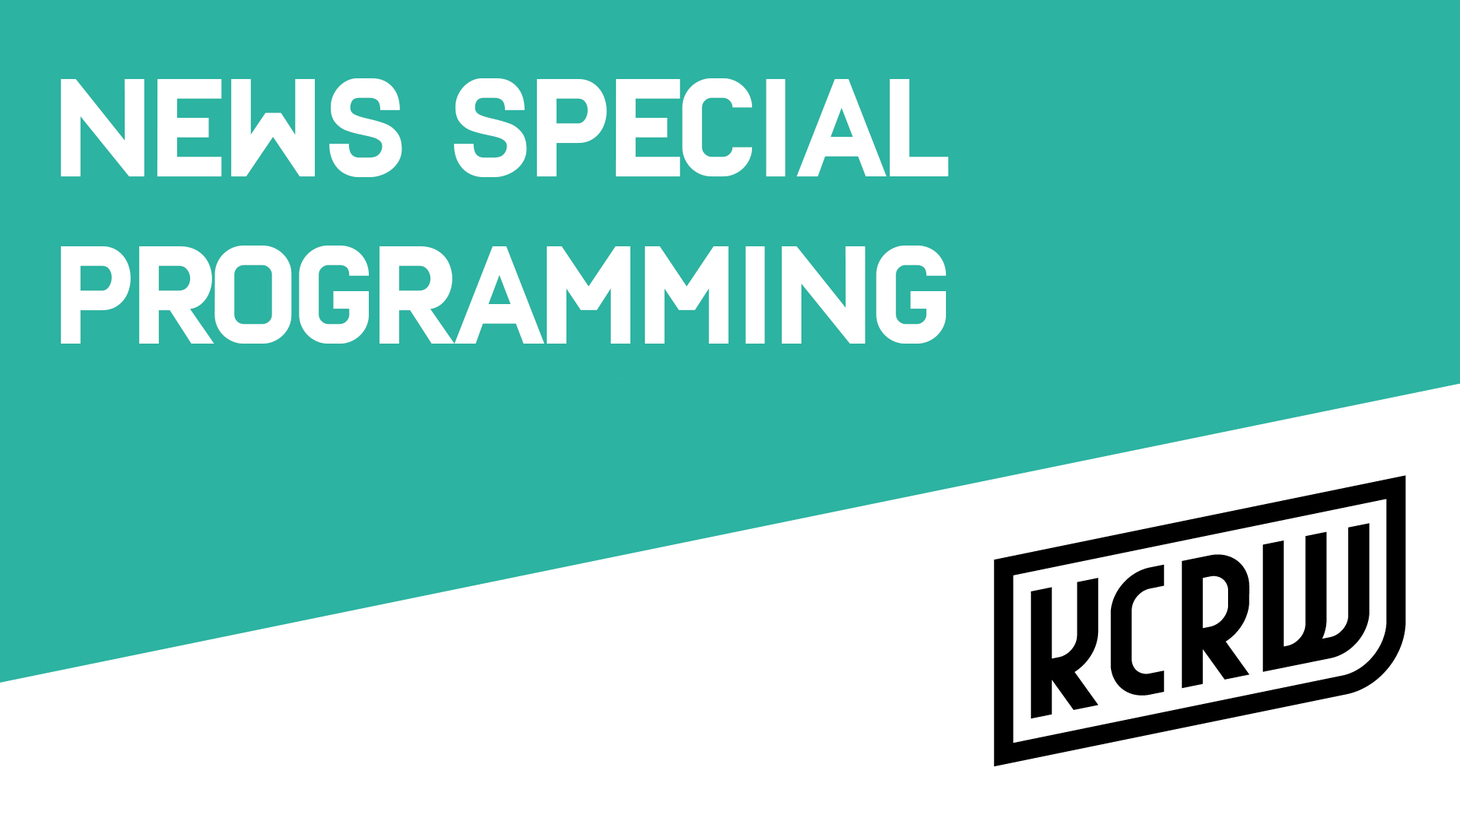 Tonight we go to demonstrations and scenes around the state, as host Brian Watt of KQED helps us hear how our neighbors are processing the news. A statewide call-in special from the California Hub. Tune in to KCRW from 7-8pm for the live coverage.